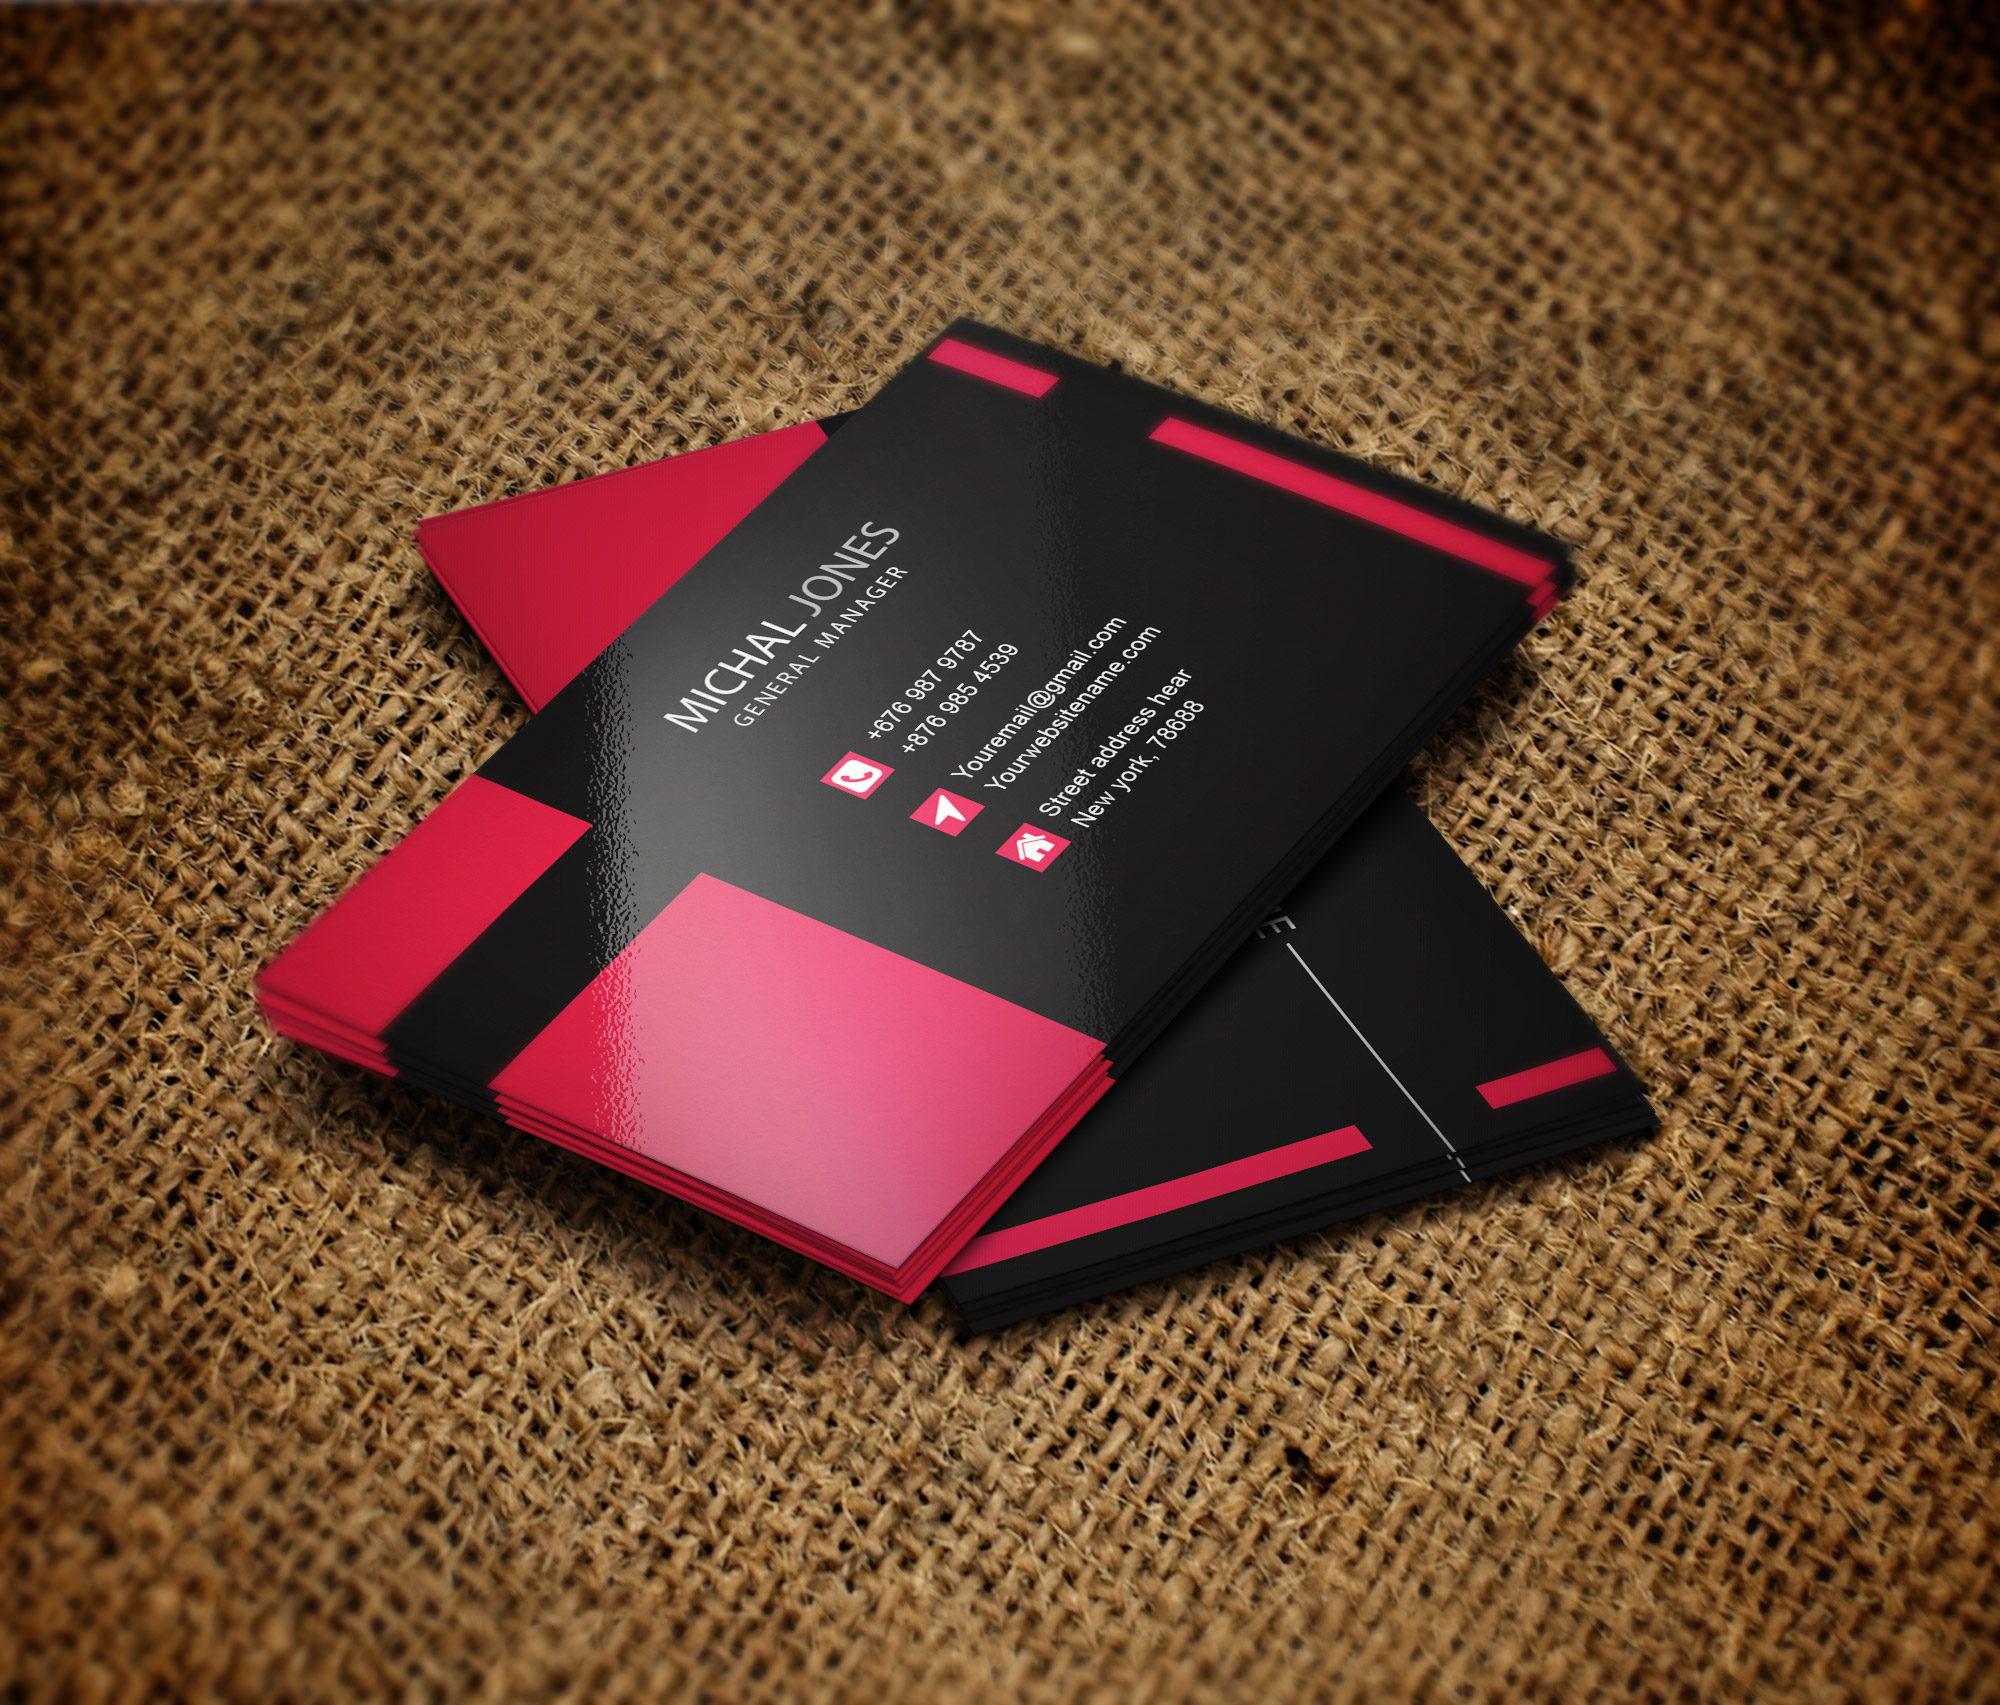 design 2 sided unique and eye catching business card for $5